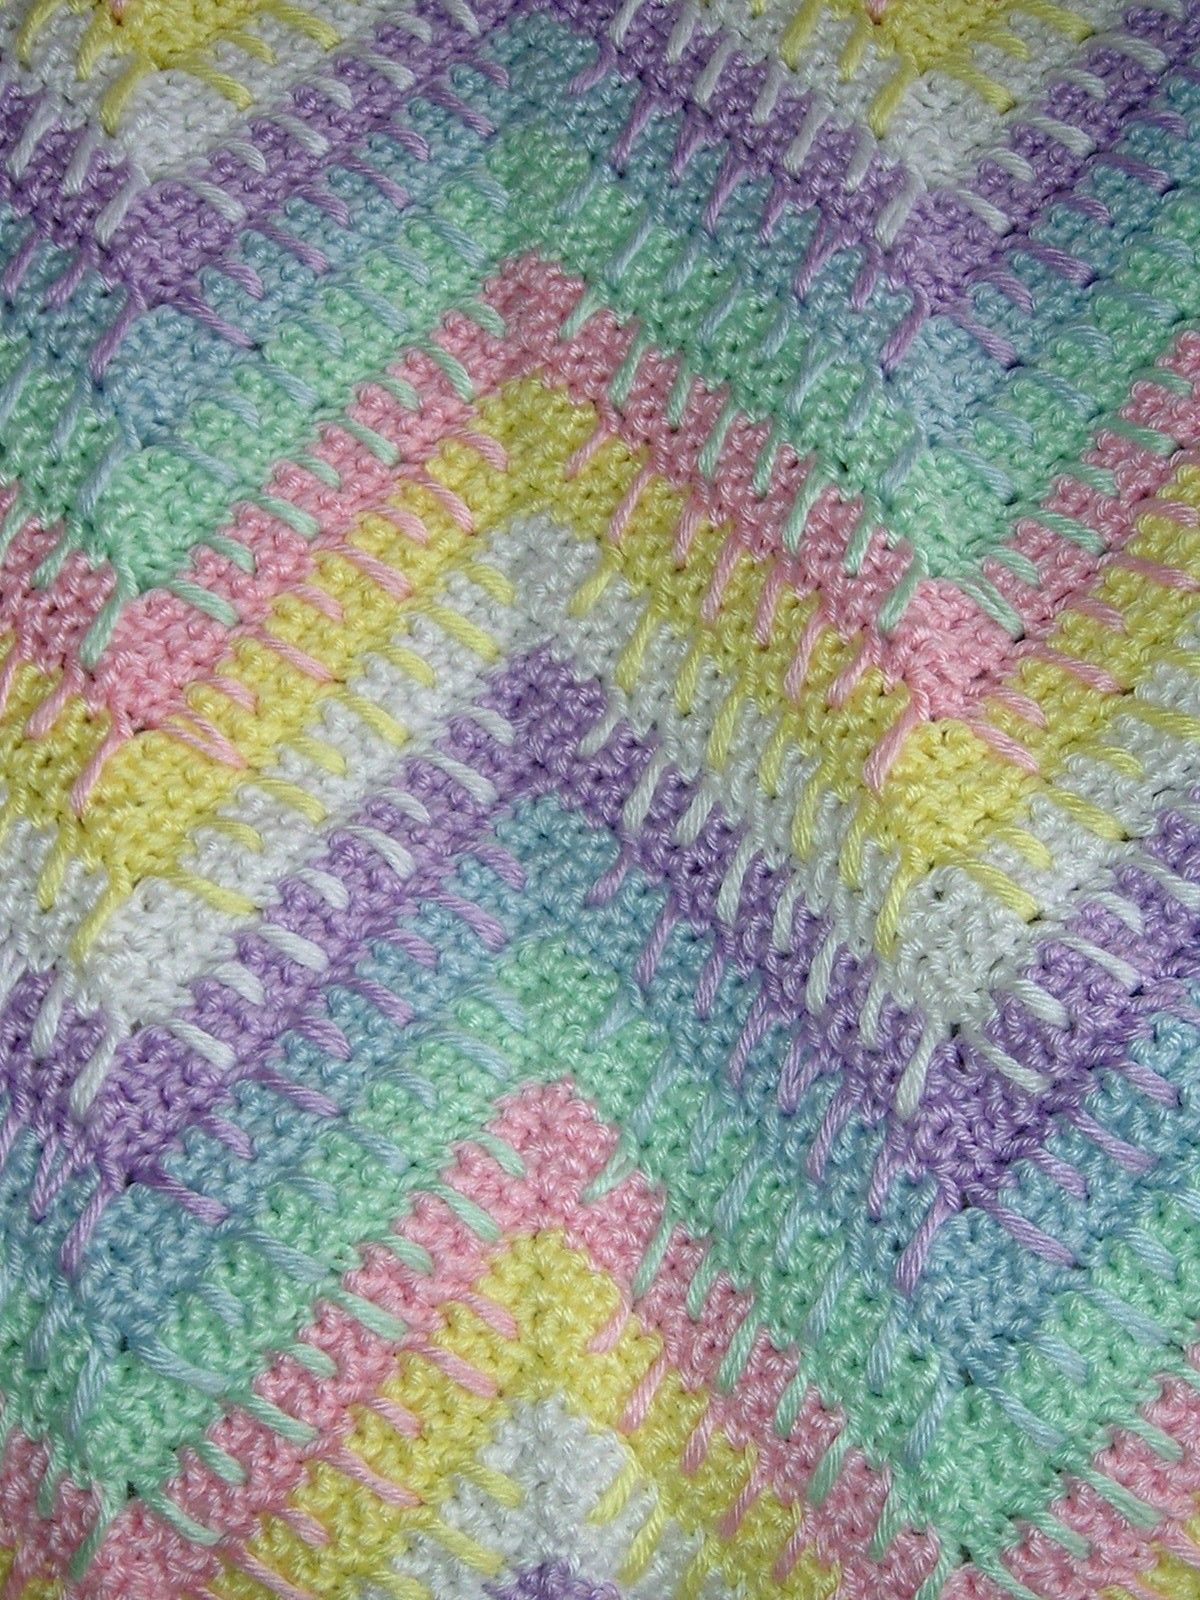 e2be32bf18ed how to create new baby crochet afghans